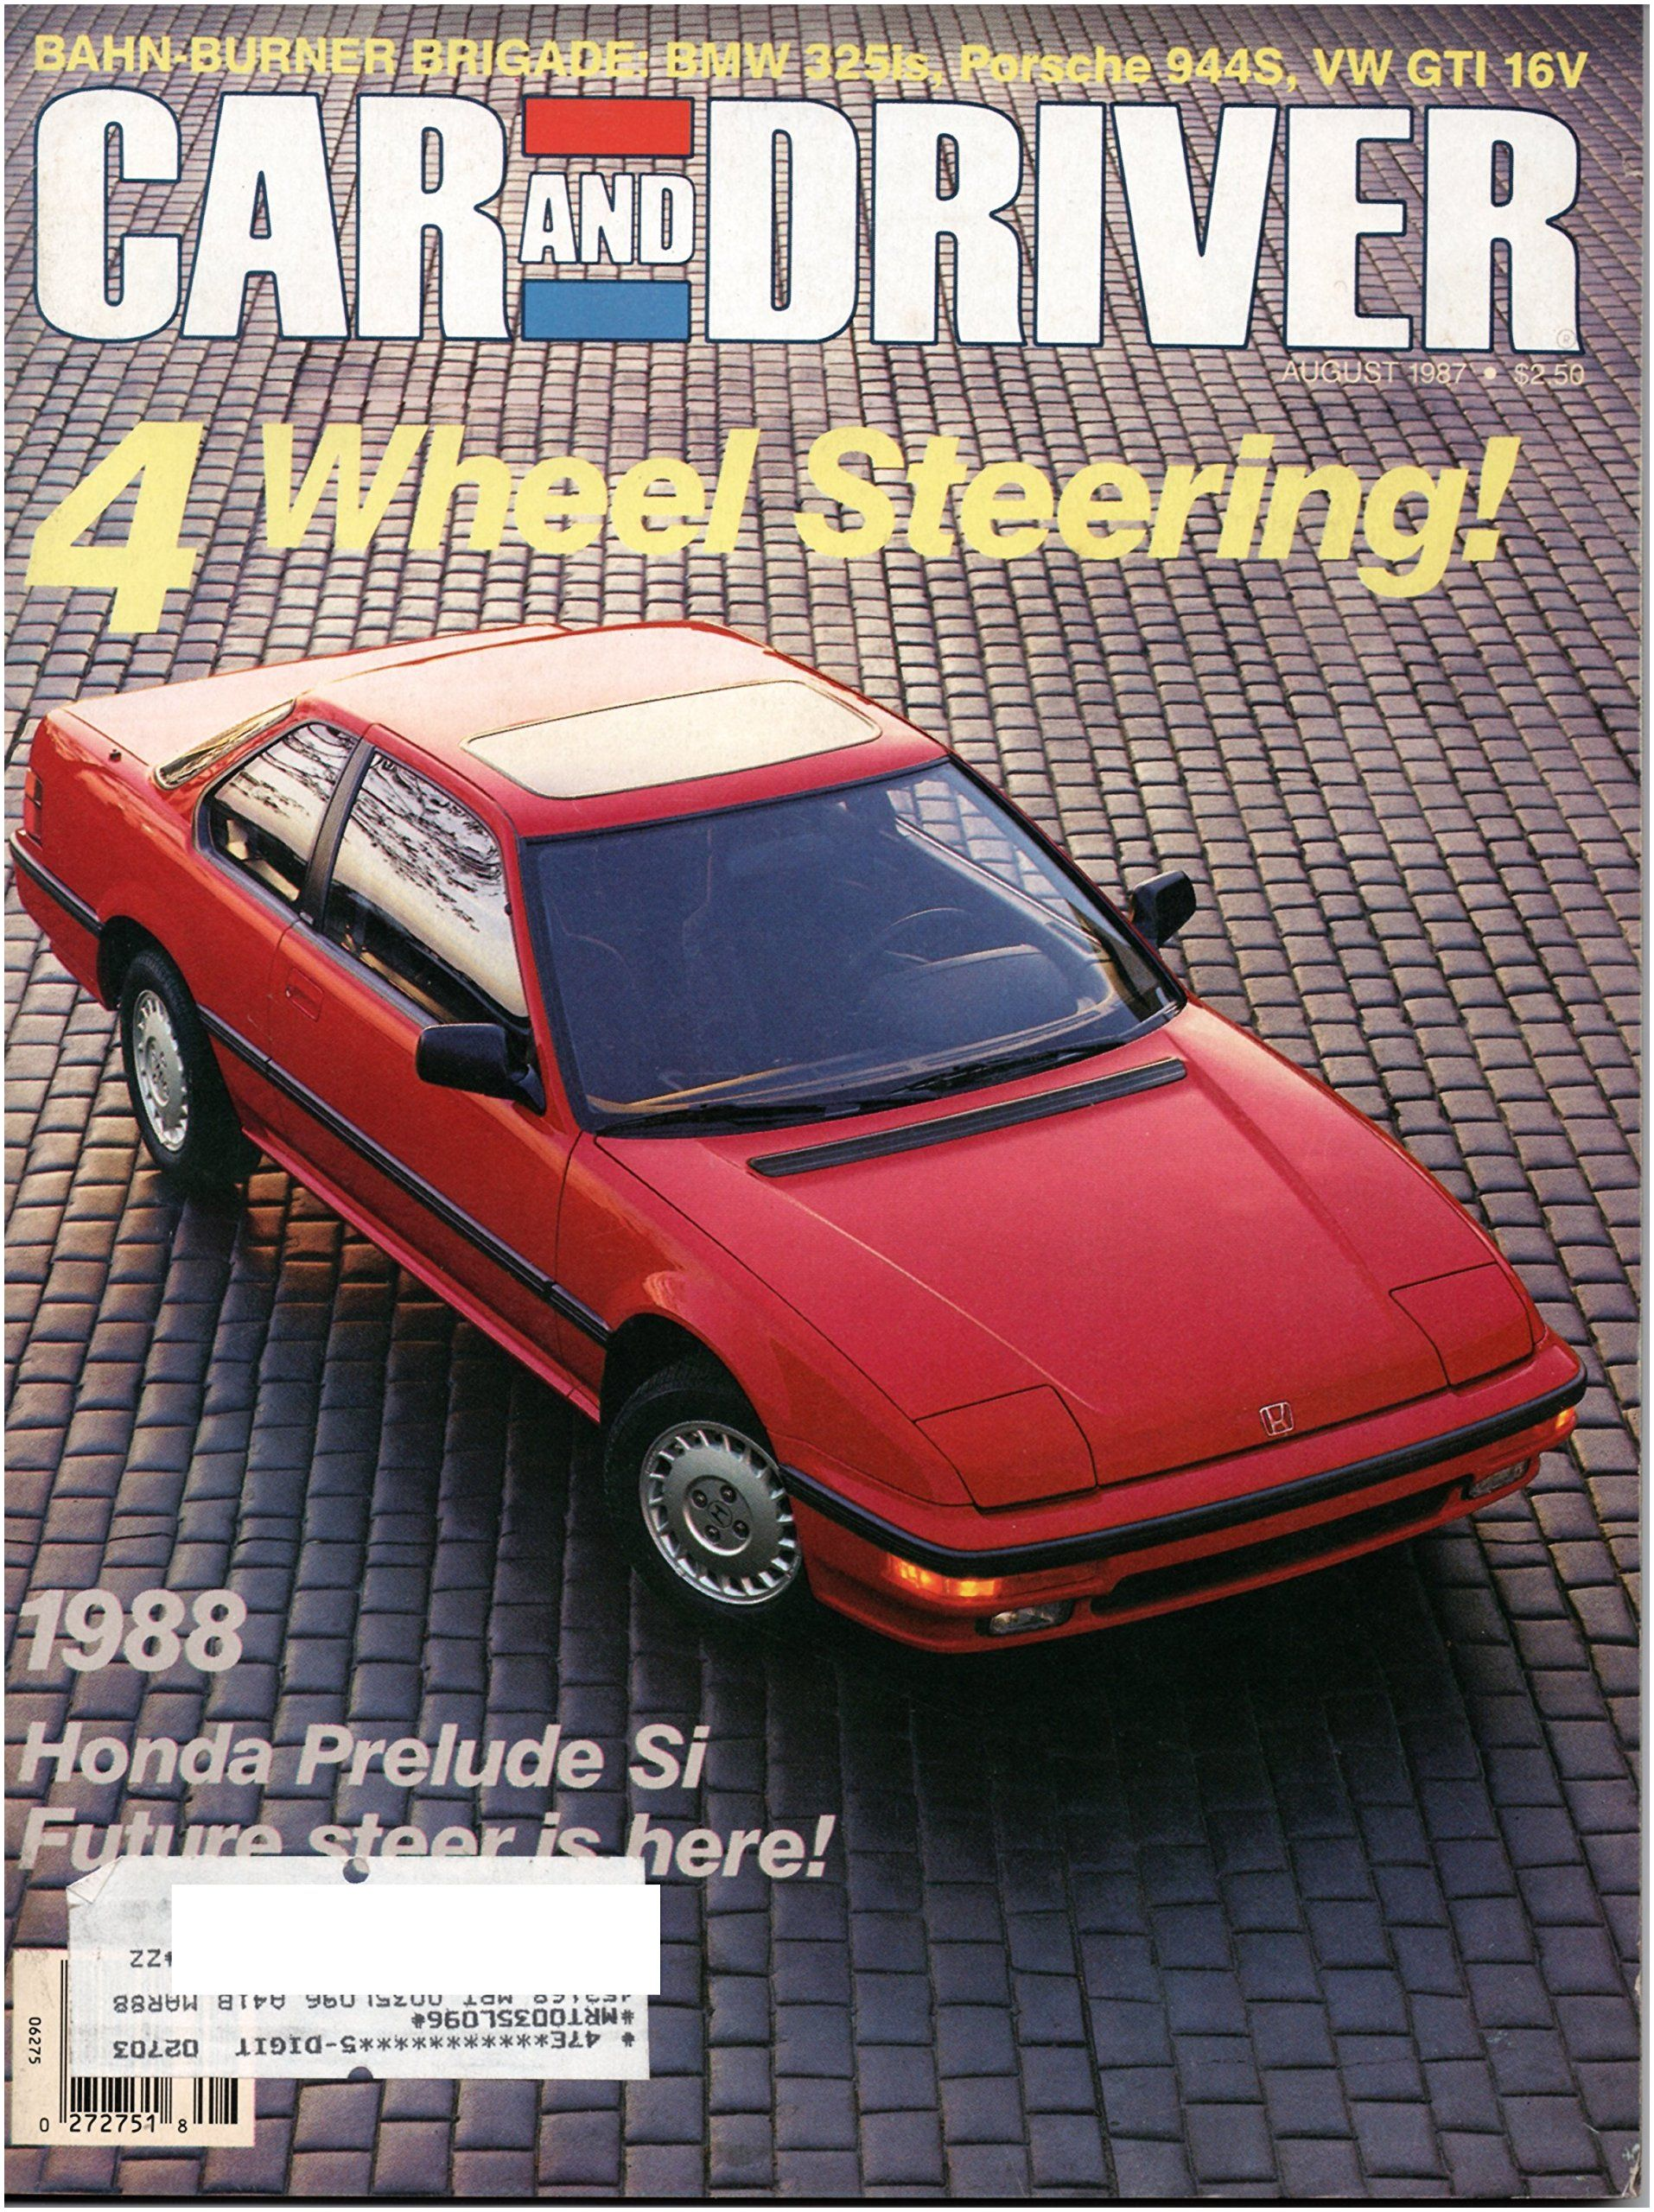 Car and Driver Magazine August 1987 Vol 33 No 2 Single Issue Magazine – 1987